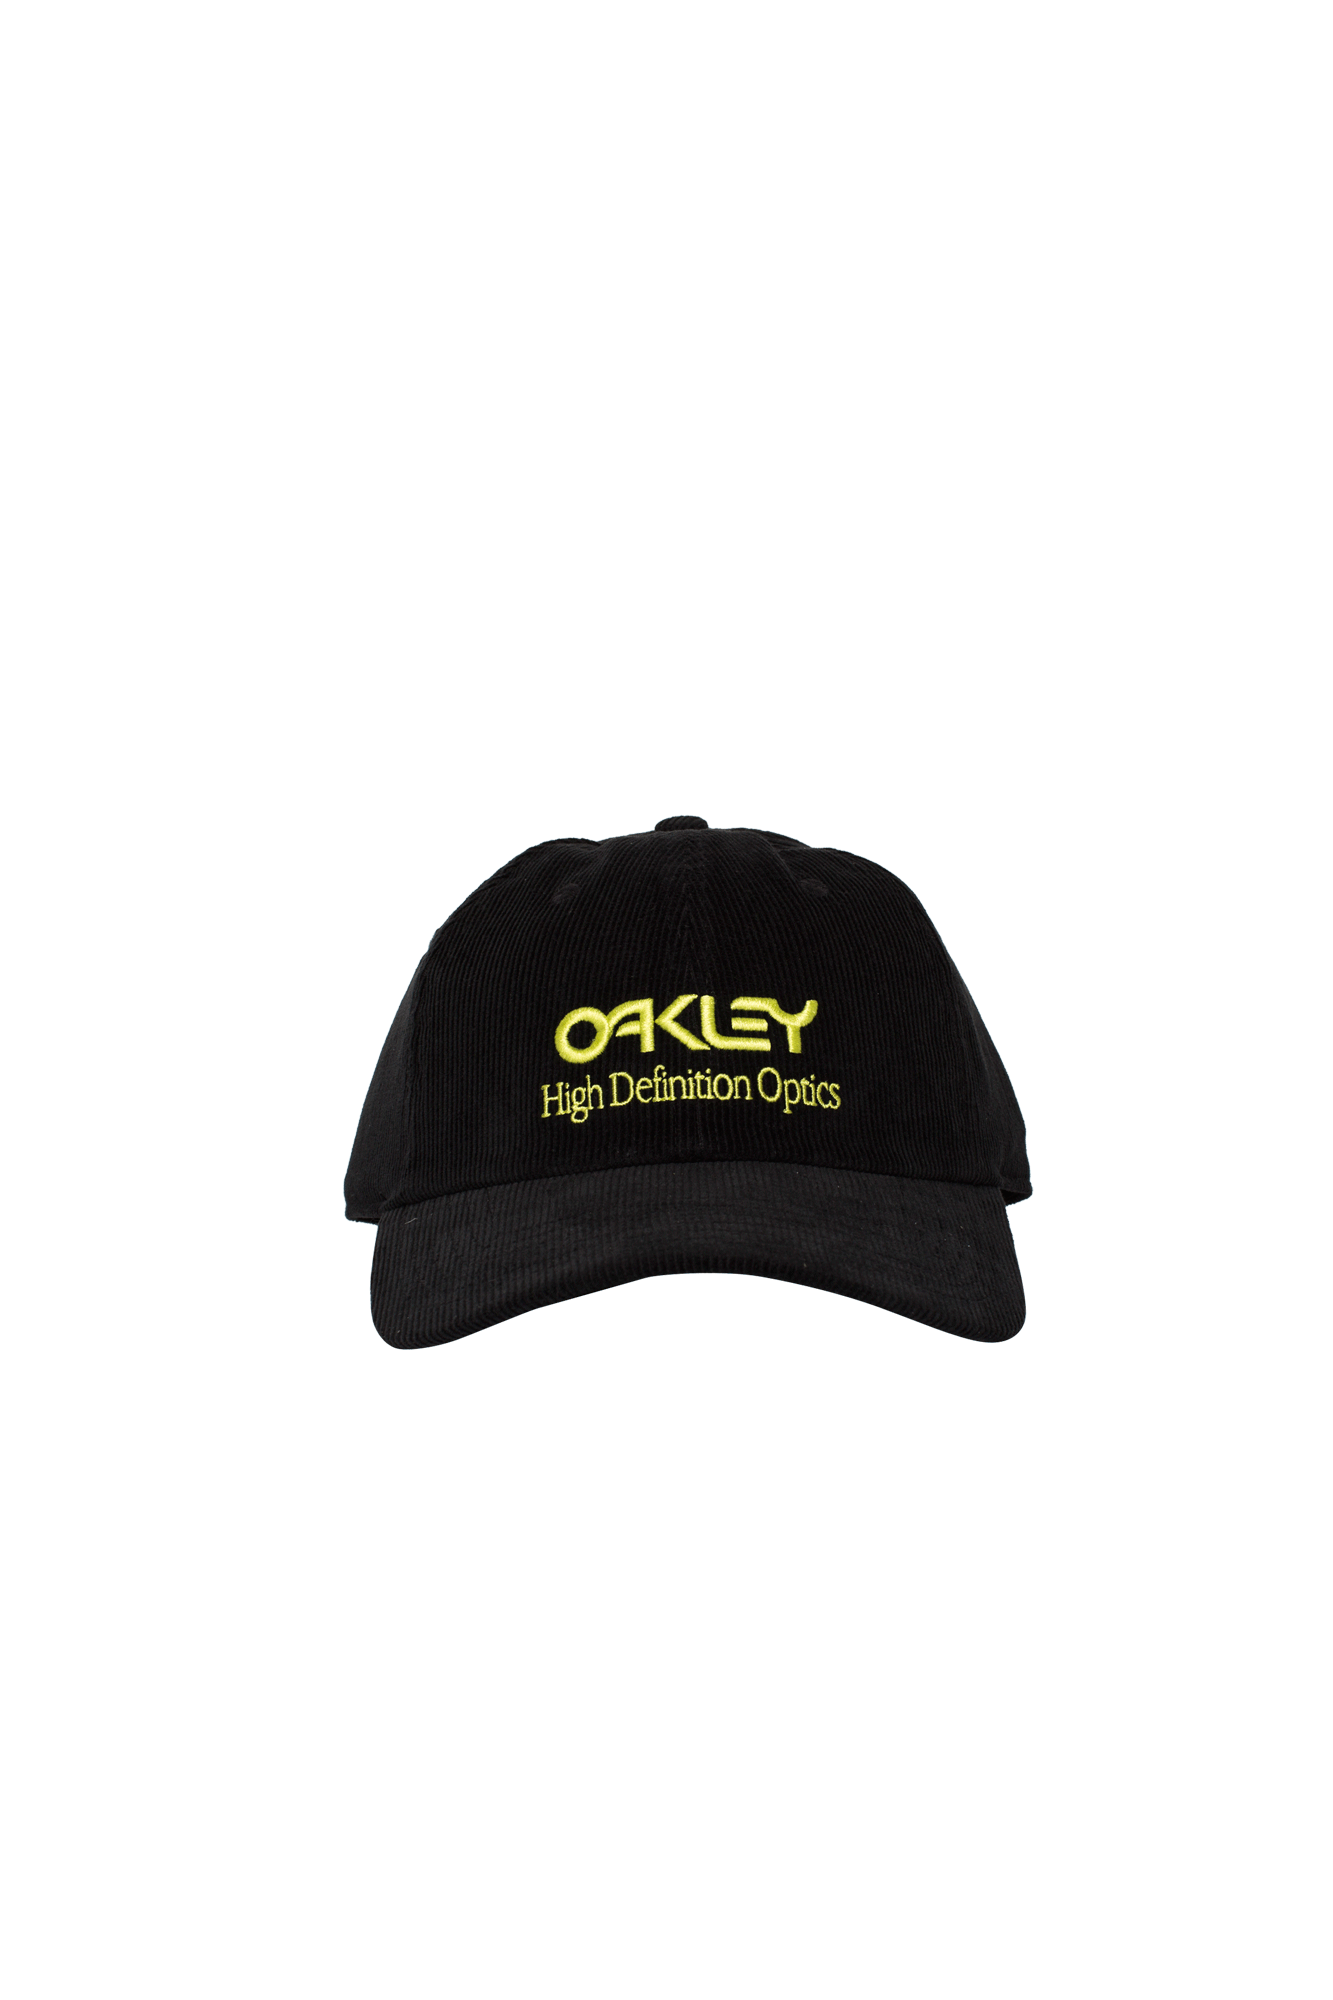 Oakley Hats High Definition Cap Black FOS900334-#000#02E#OS - One Block Down